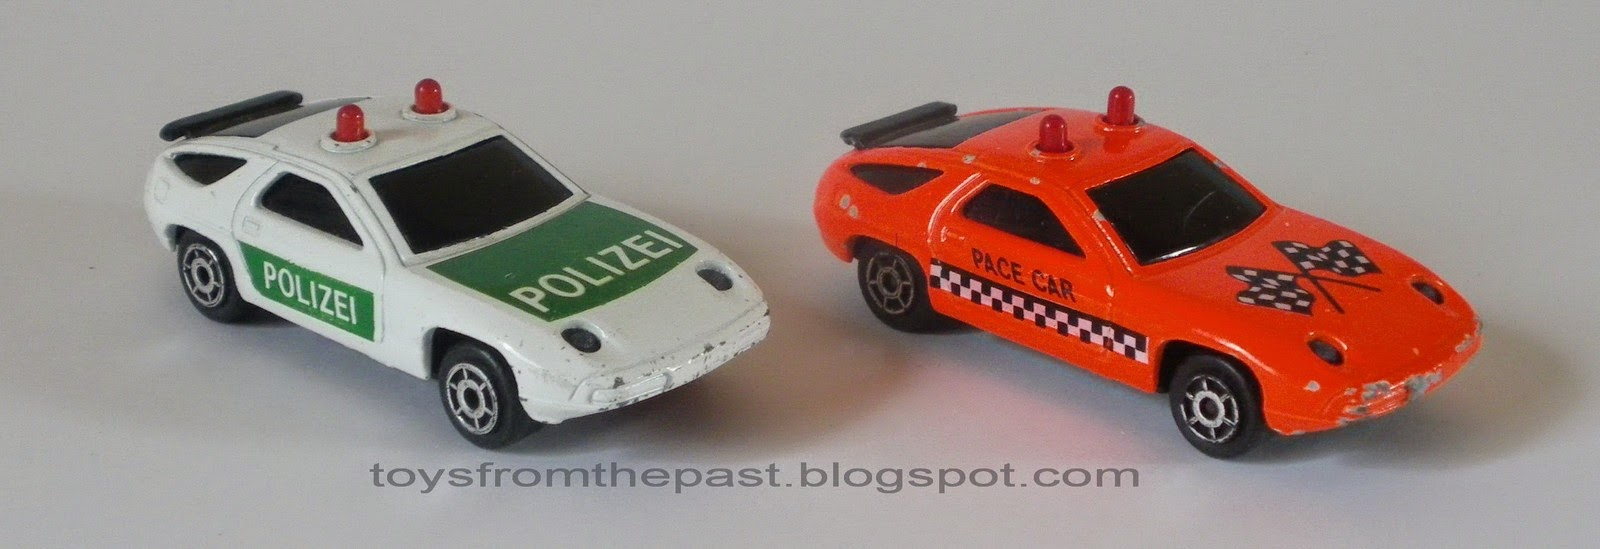 Battery Operate Toy Police Car That Makes Turns